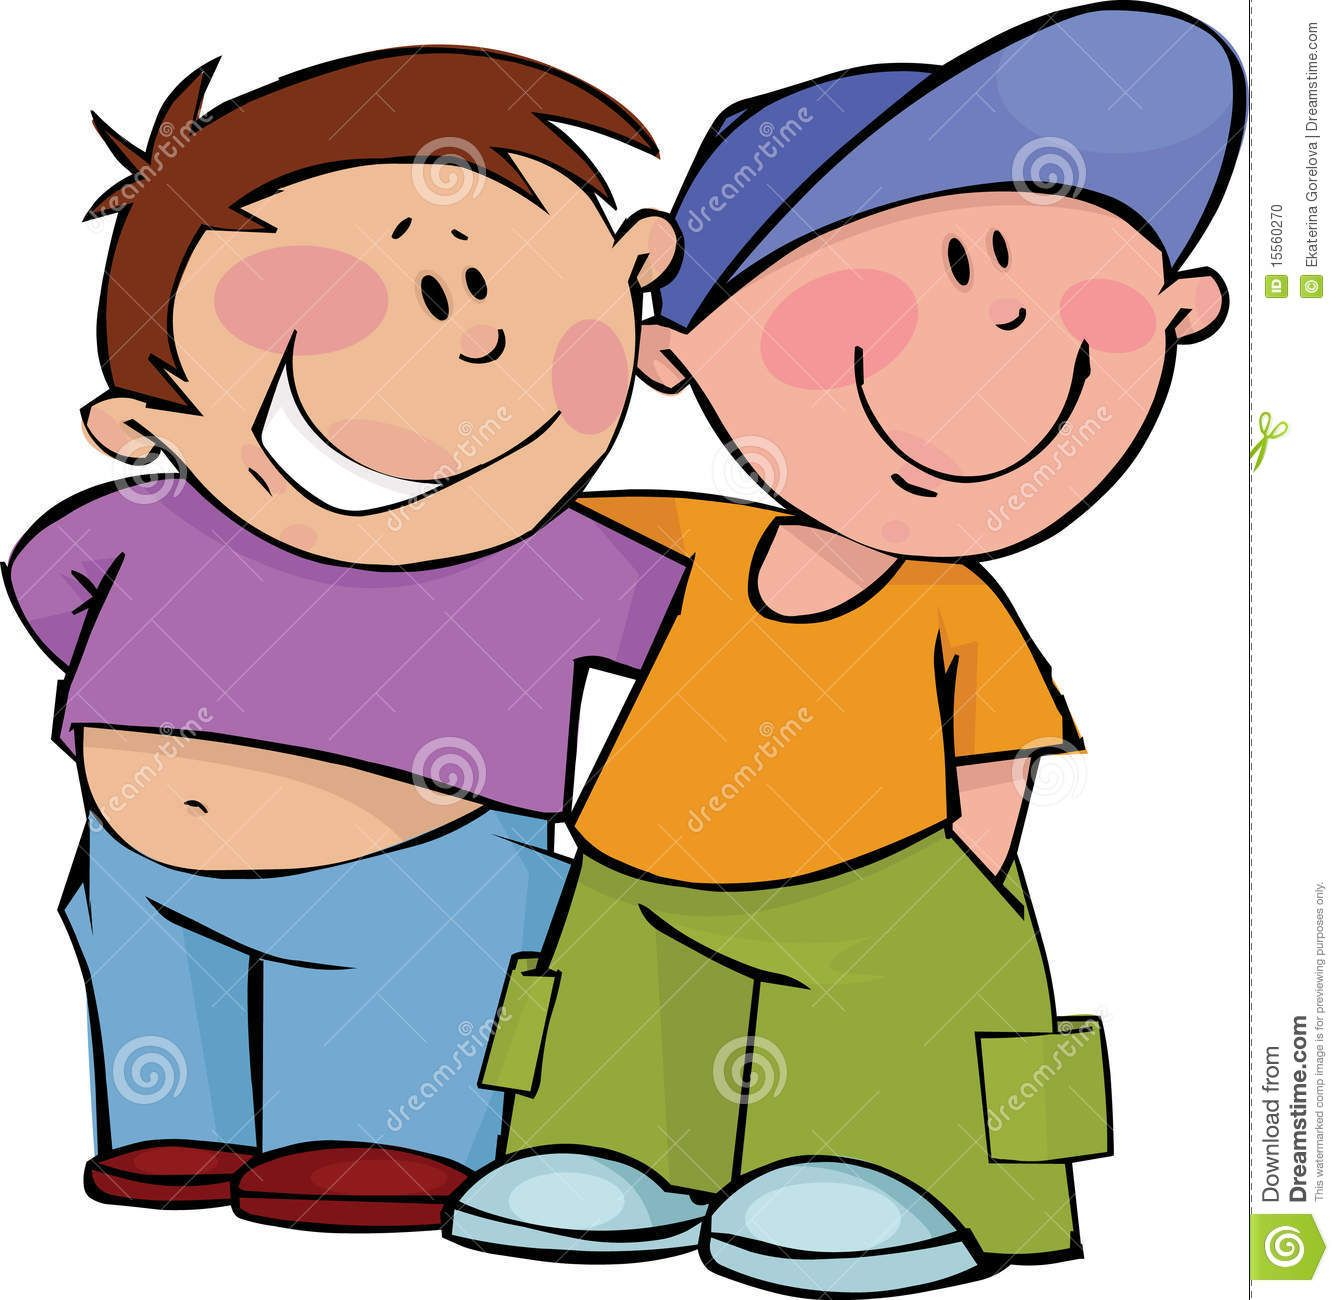 clipart friends two funny boys in a friendly hug  [ 1339 x 1300 Pixel ]